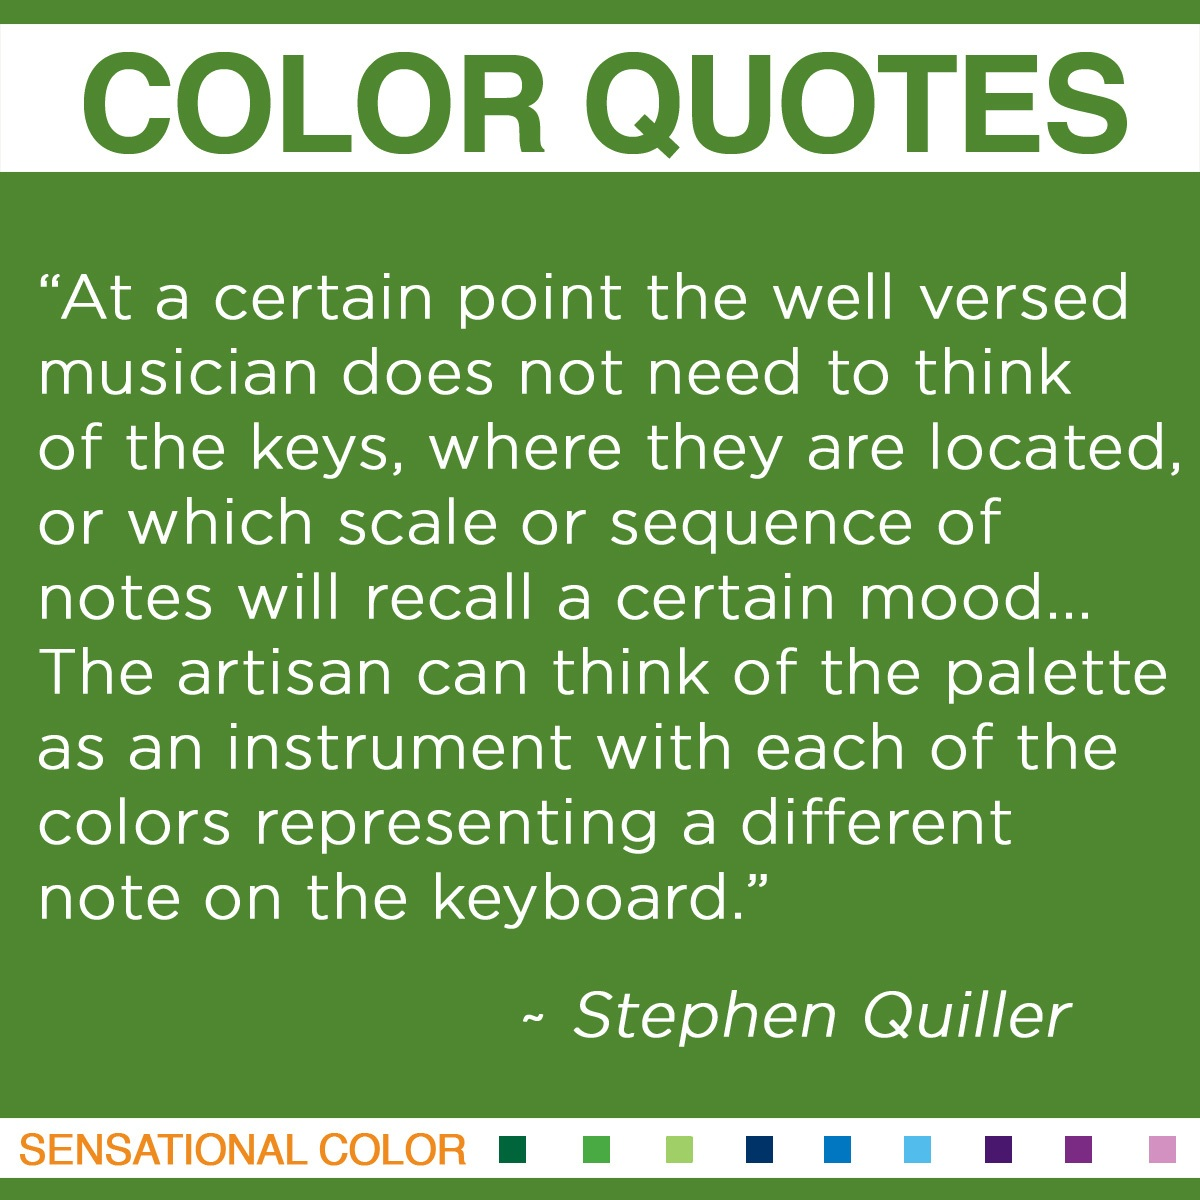 """At a certain point the well-versed musician does not need to think of the keys, where they are located, or which scale or sequence of notes will recall a certain mood… The artisan can think of the palette as an instrument with each of the colors representing a different note on the keyboard."" - Stephen Quiller"